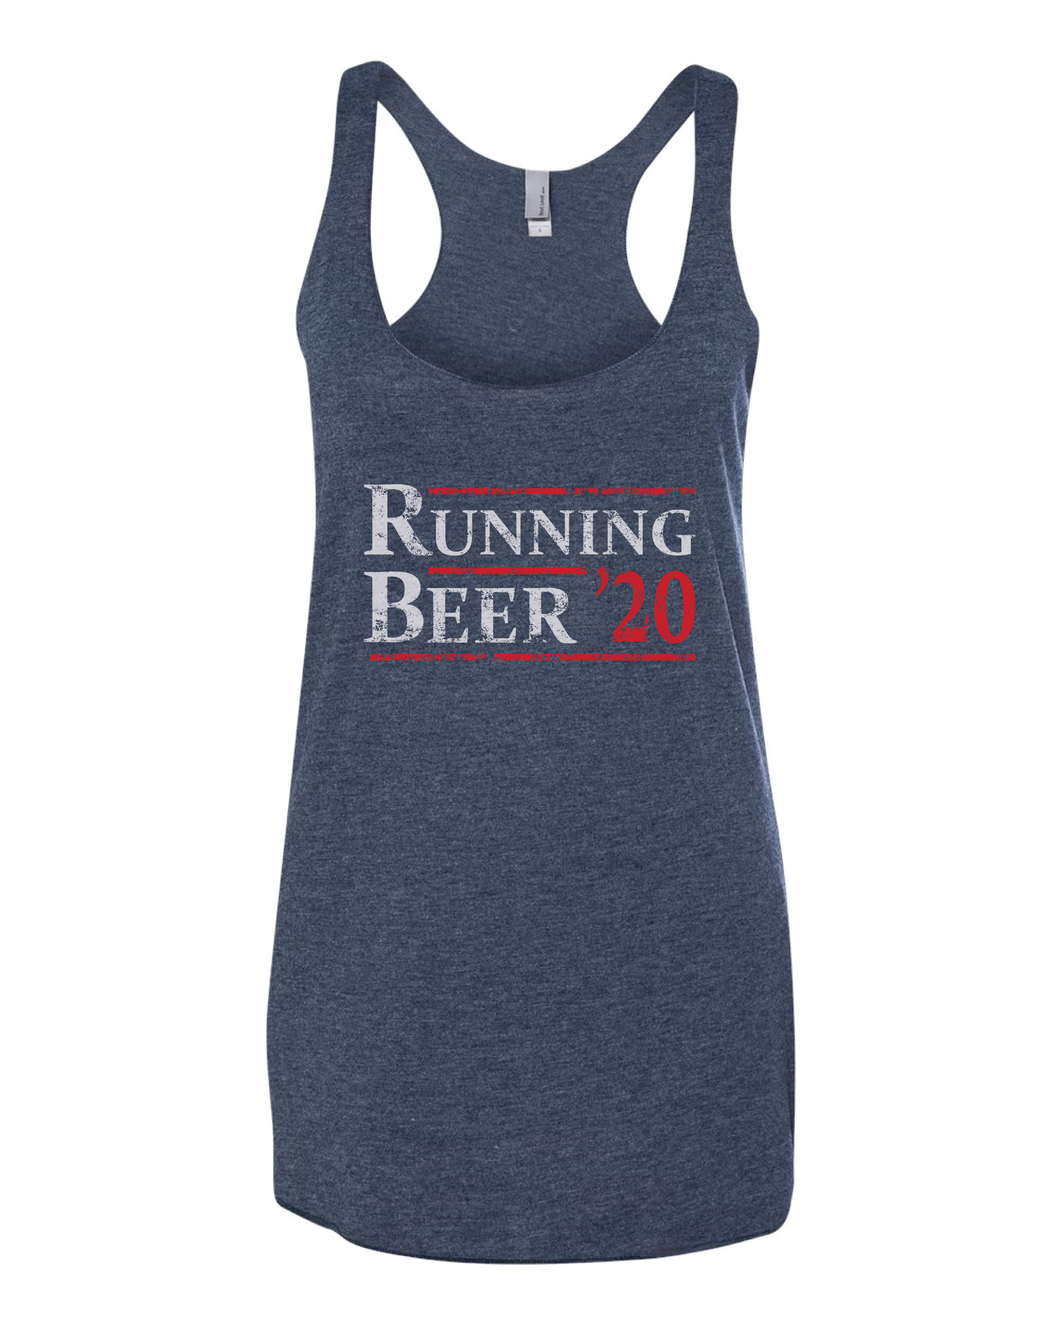 Running Mates 2020 - Women's Tank Top - Vintage Navy